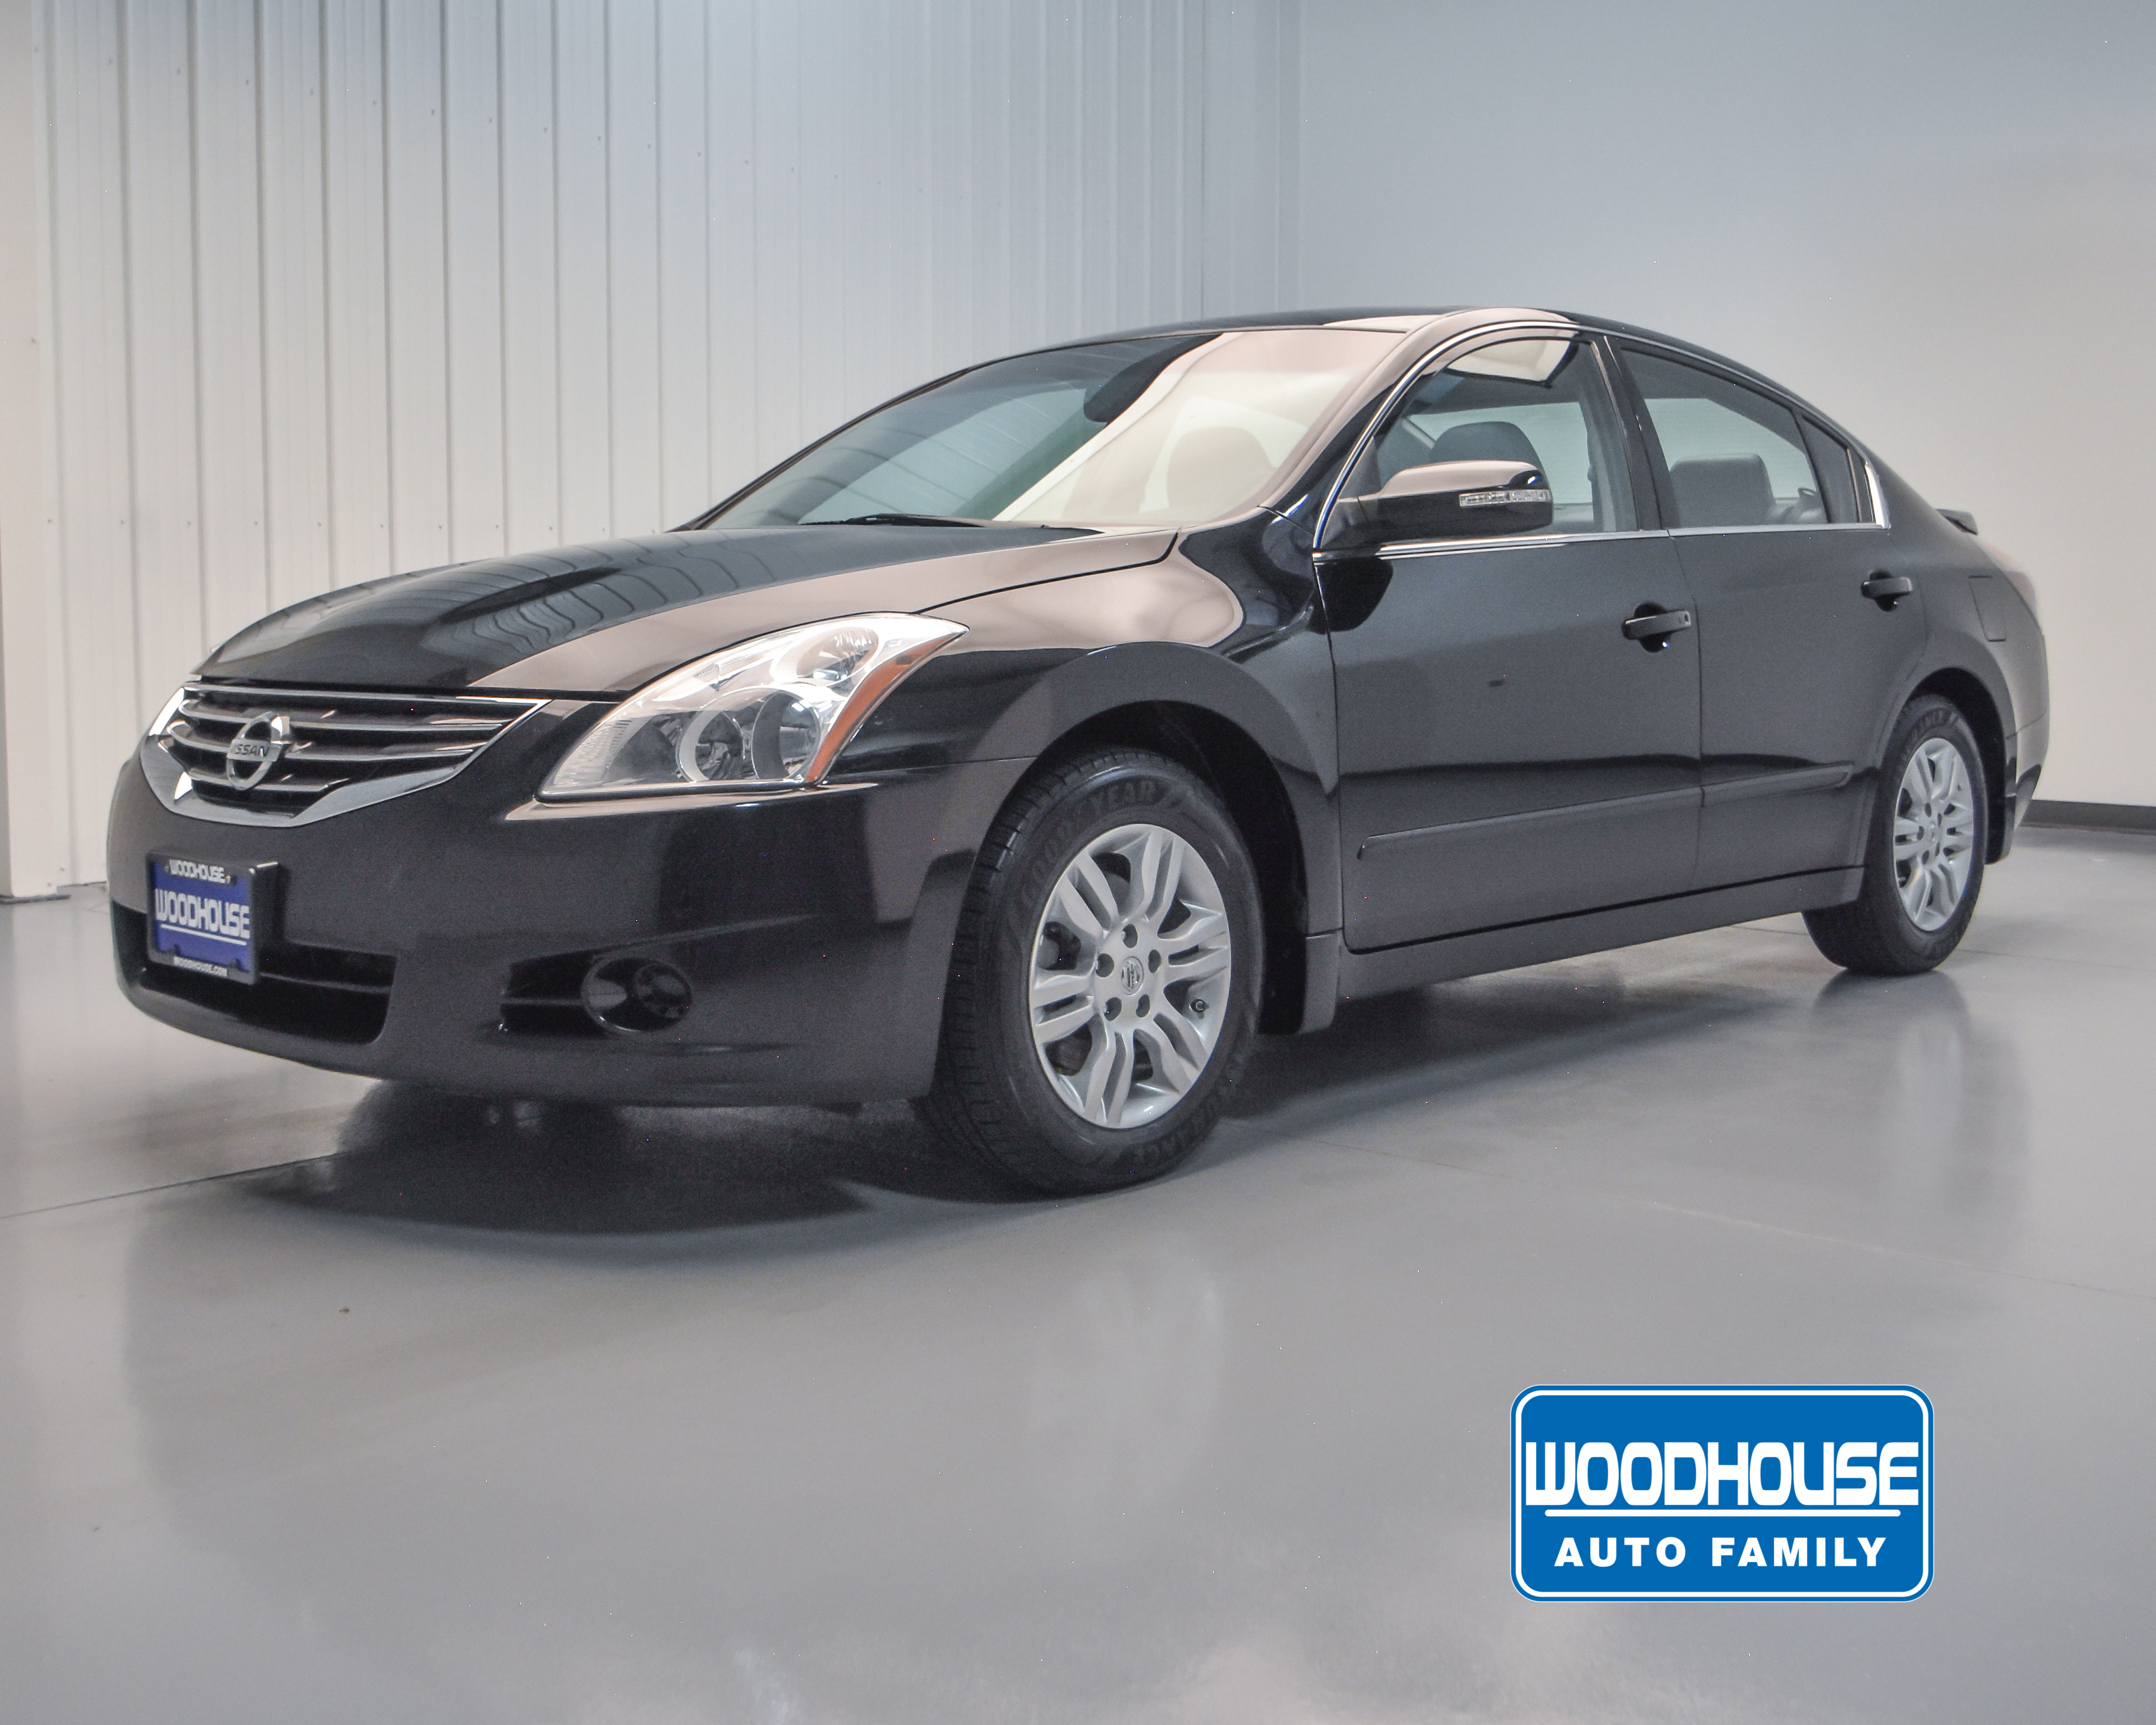 2012 Nissan Altima For Sale >> Woodhouse Used 2012 Nissan Altima For Sale Nissan Bellevue